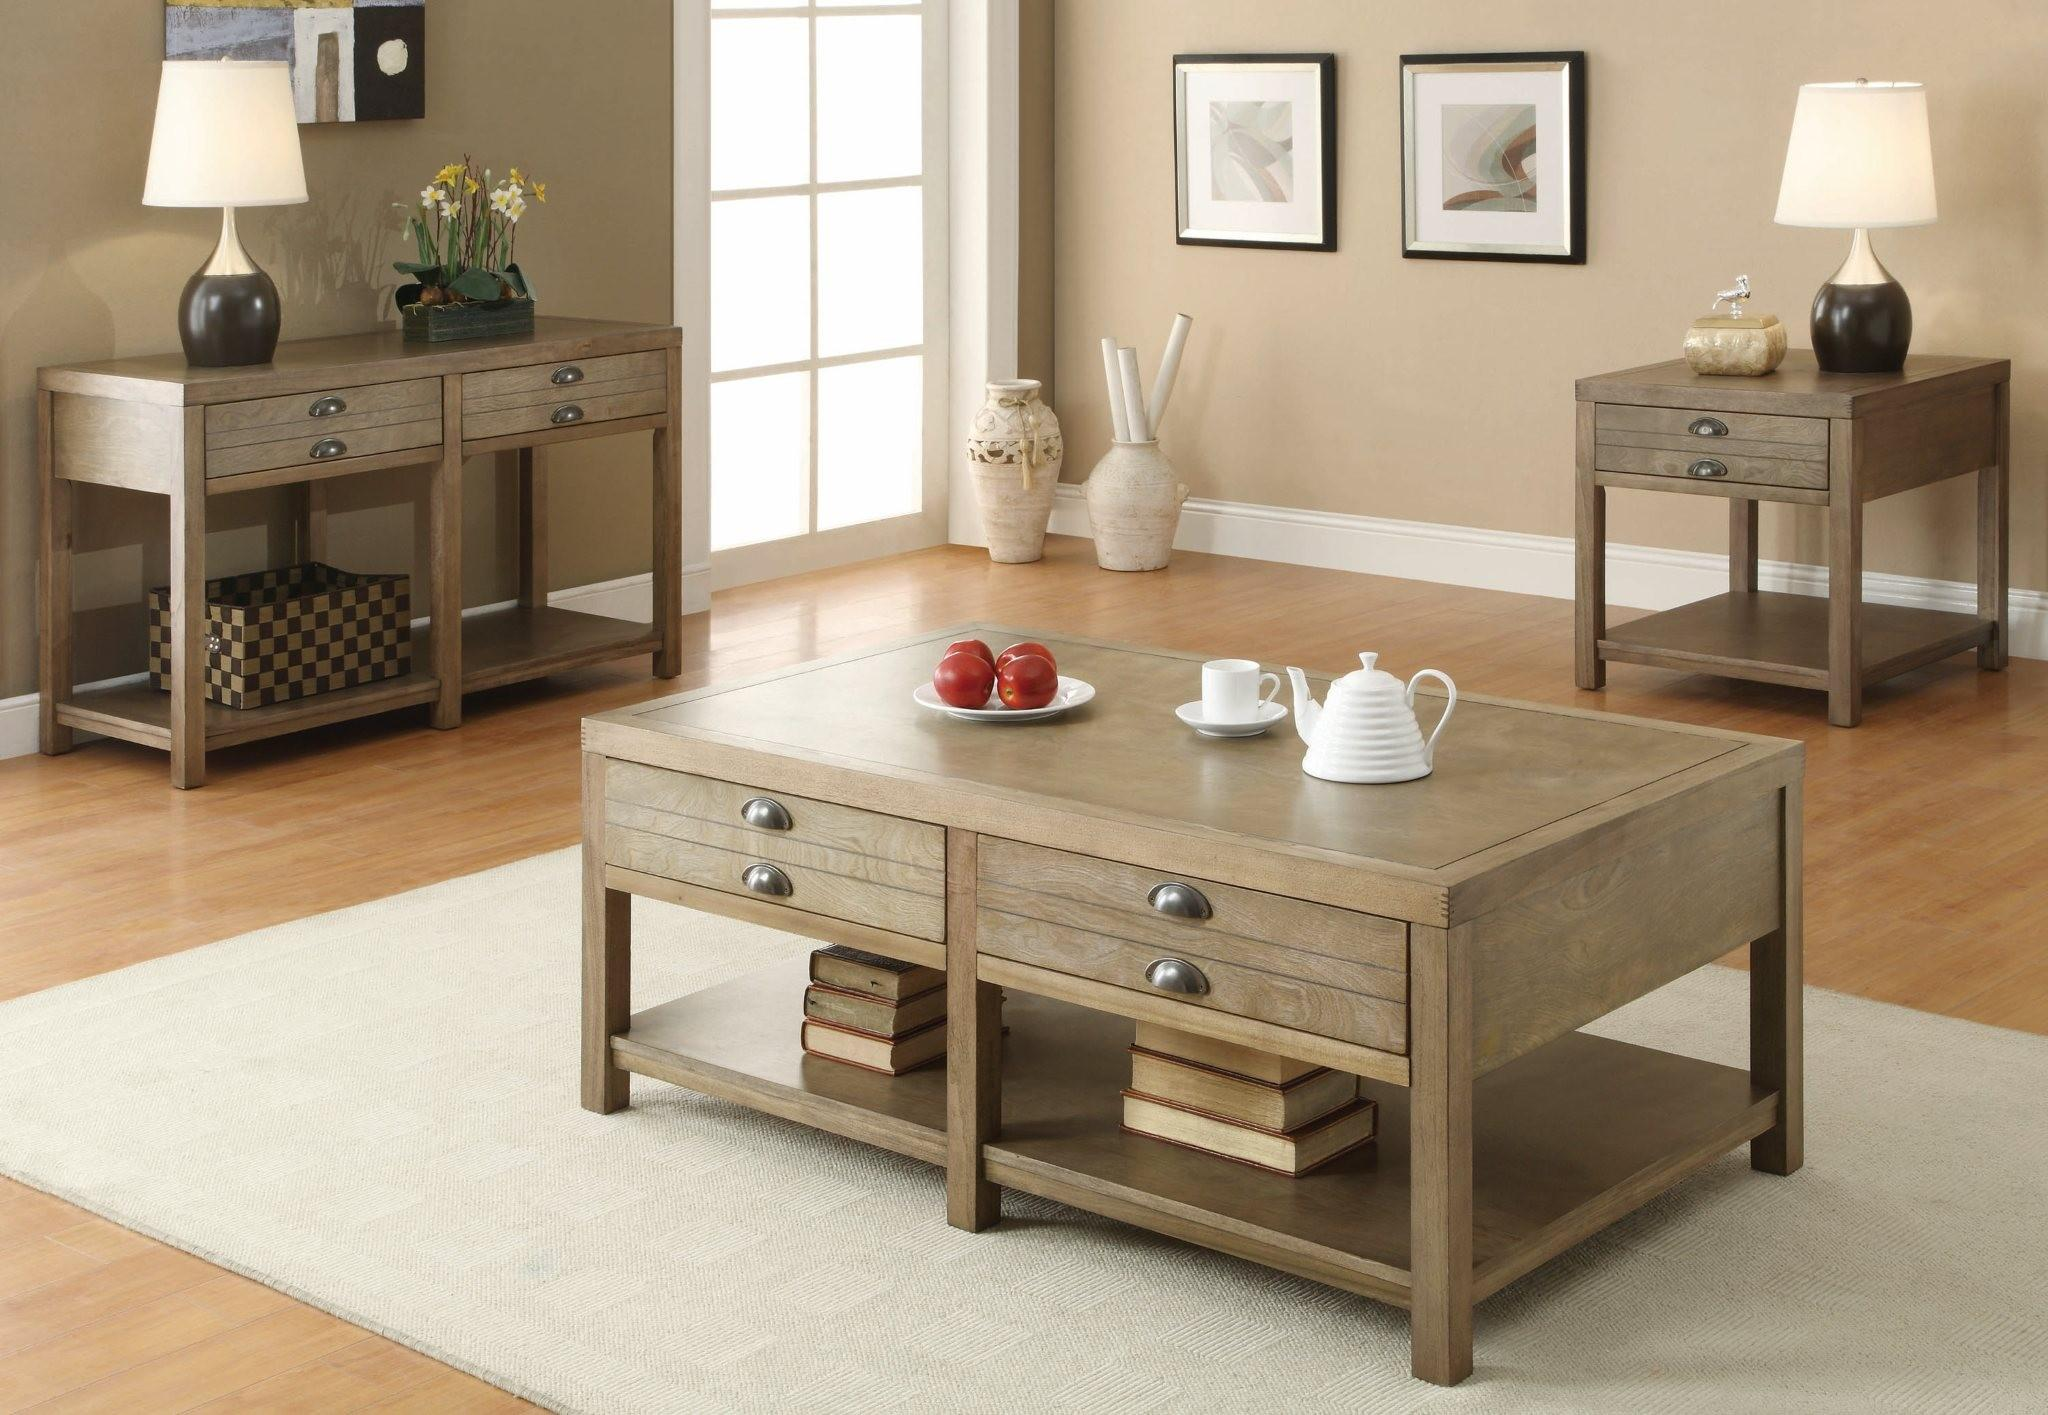 Coaster Occasional Group Cottage Sofa End And Coffee Tables Driftwood Finish Coffee Table Home Coffee Tables Coffee Table With Drawers [ 1415 x 2048 Pixel ]